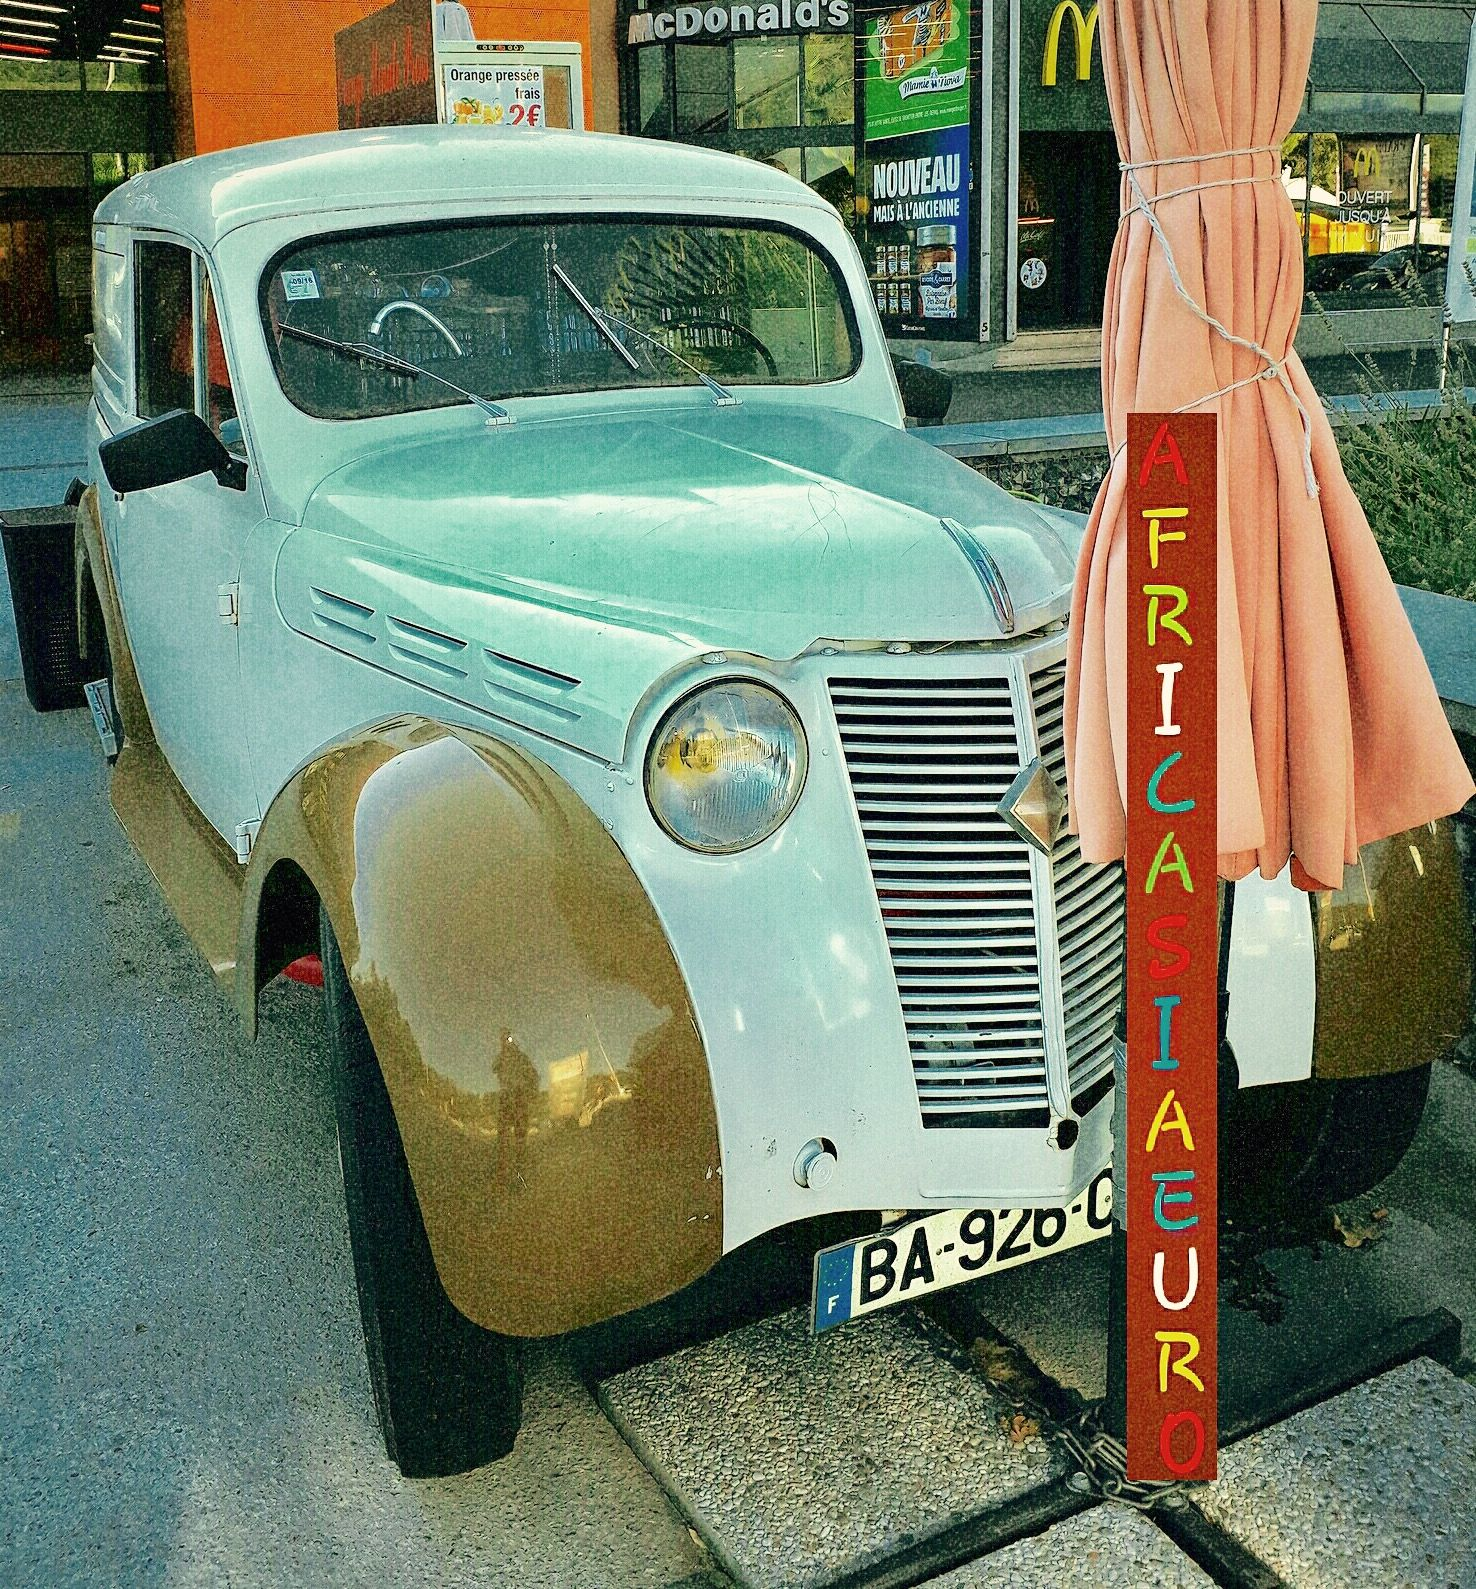 Citroen 56 Nice South of France Lingostiere